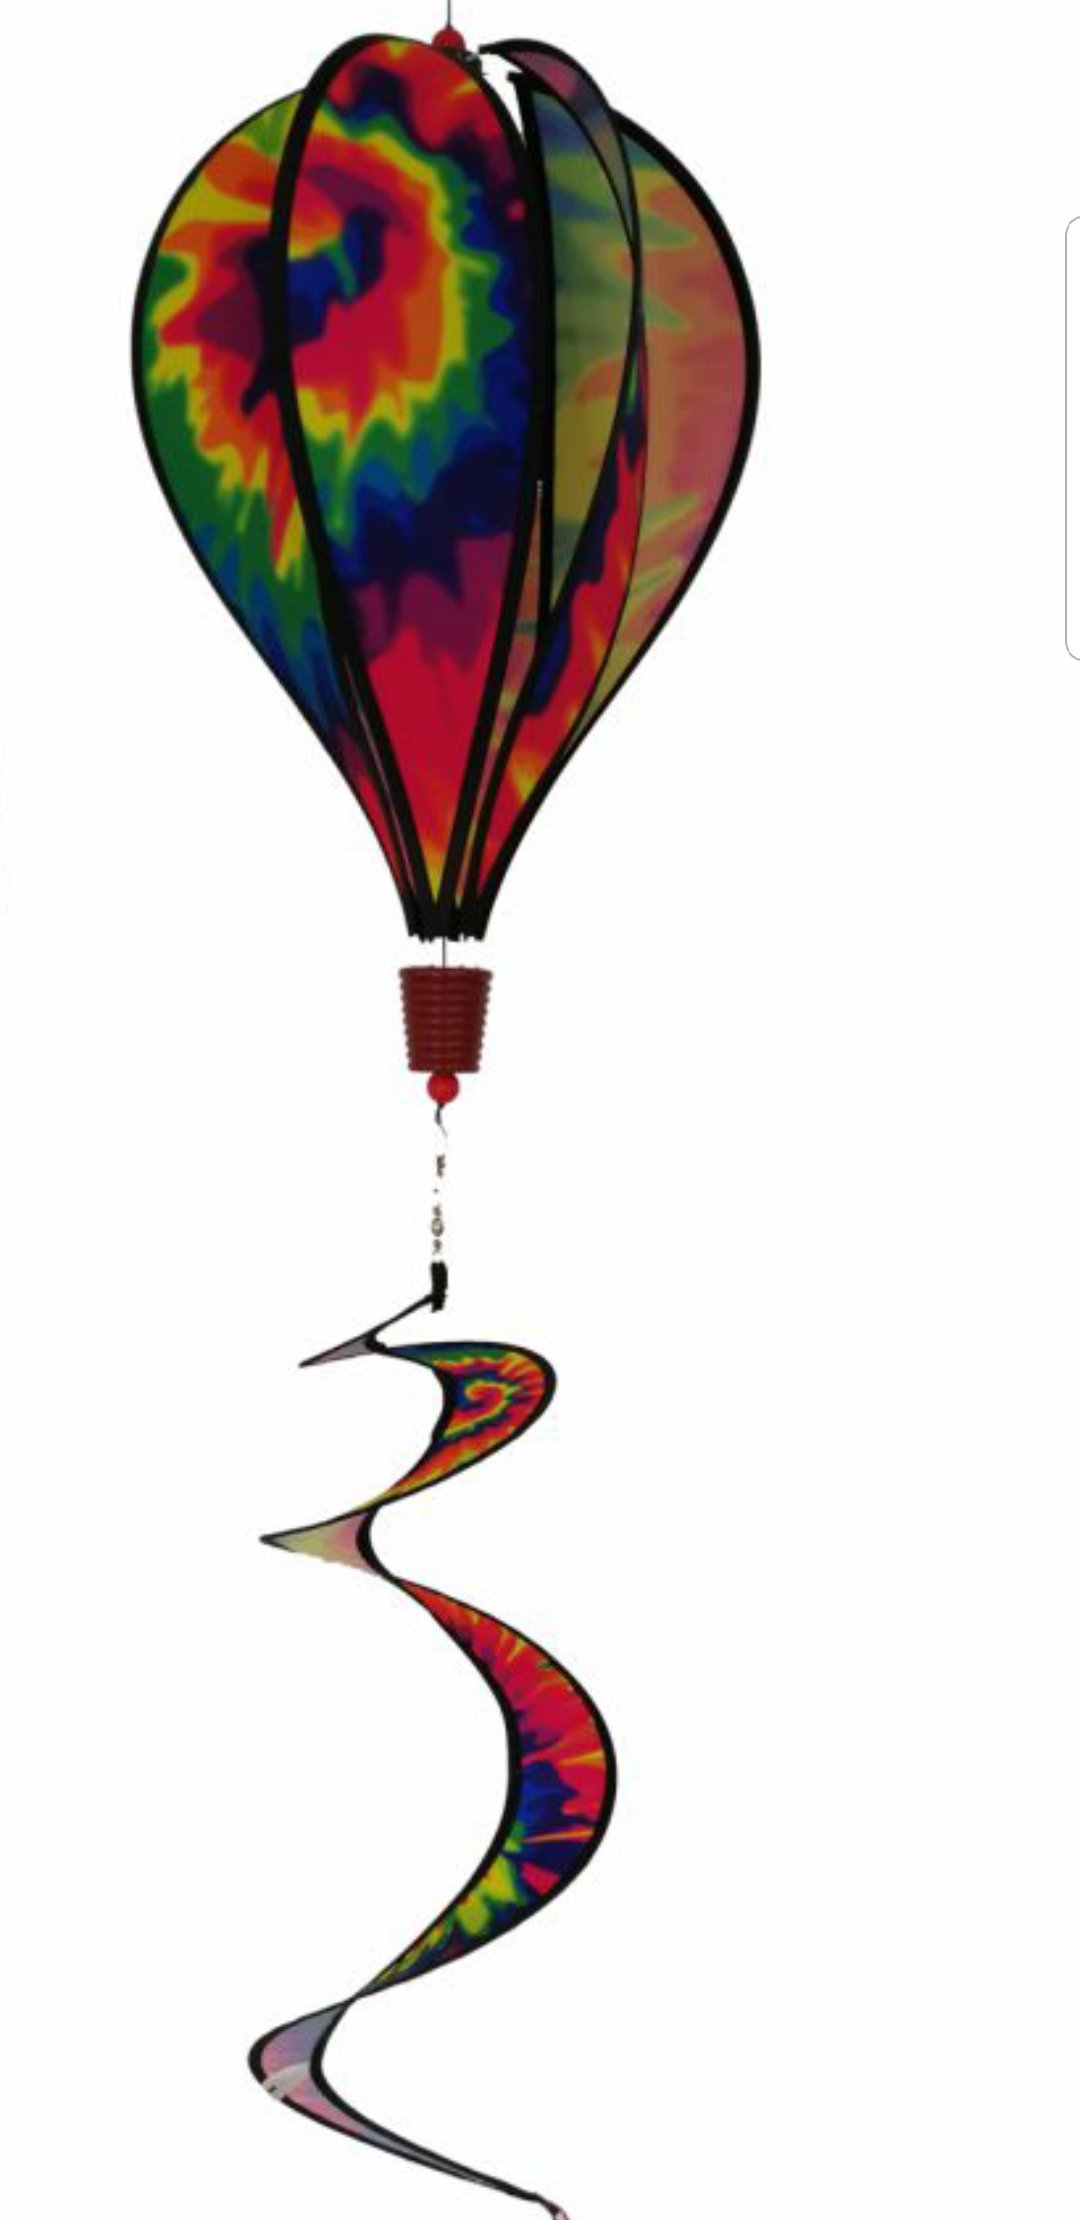 Produtos Profissionais de Elite 16-Inch 6-Panel Tie Dye Hot Air Balloon Wind Spinner with 30-Inch Tails